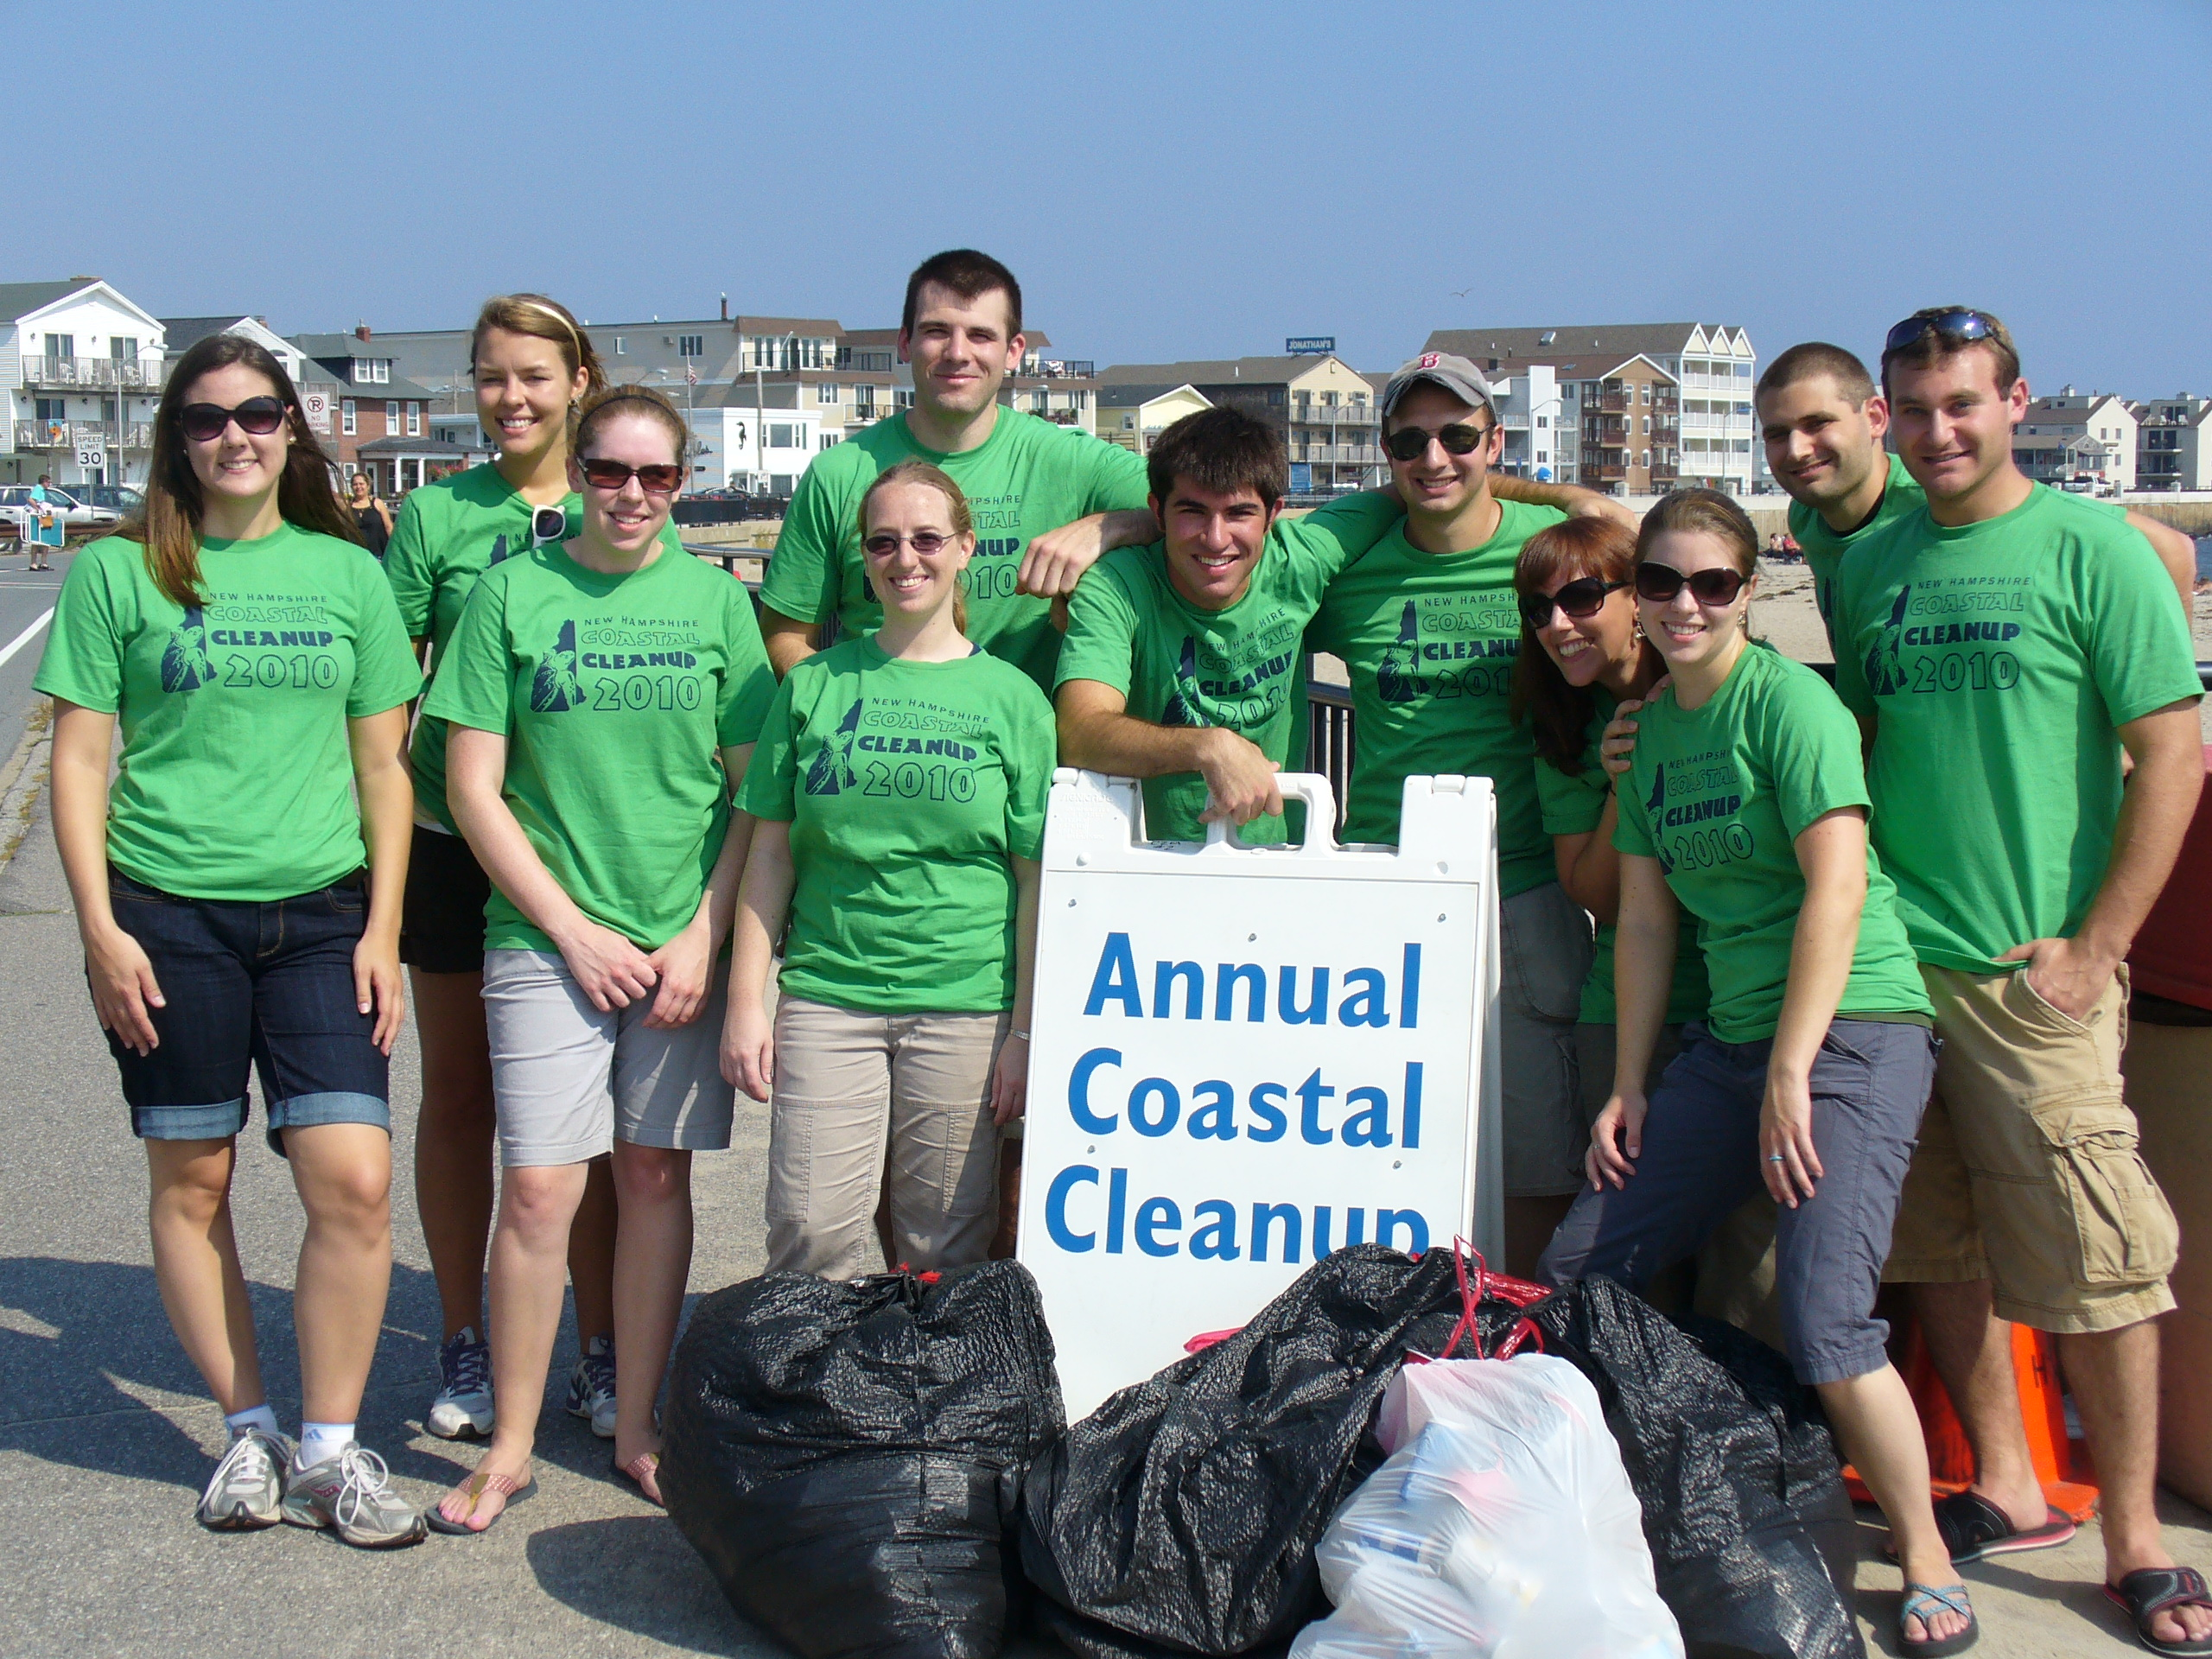 group of volunteers with full trash bags and an Annual Coastal Cleanup sign in front of them.